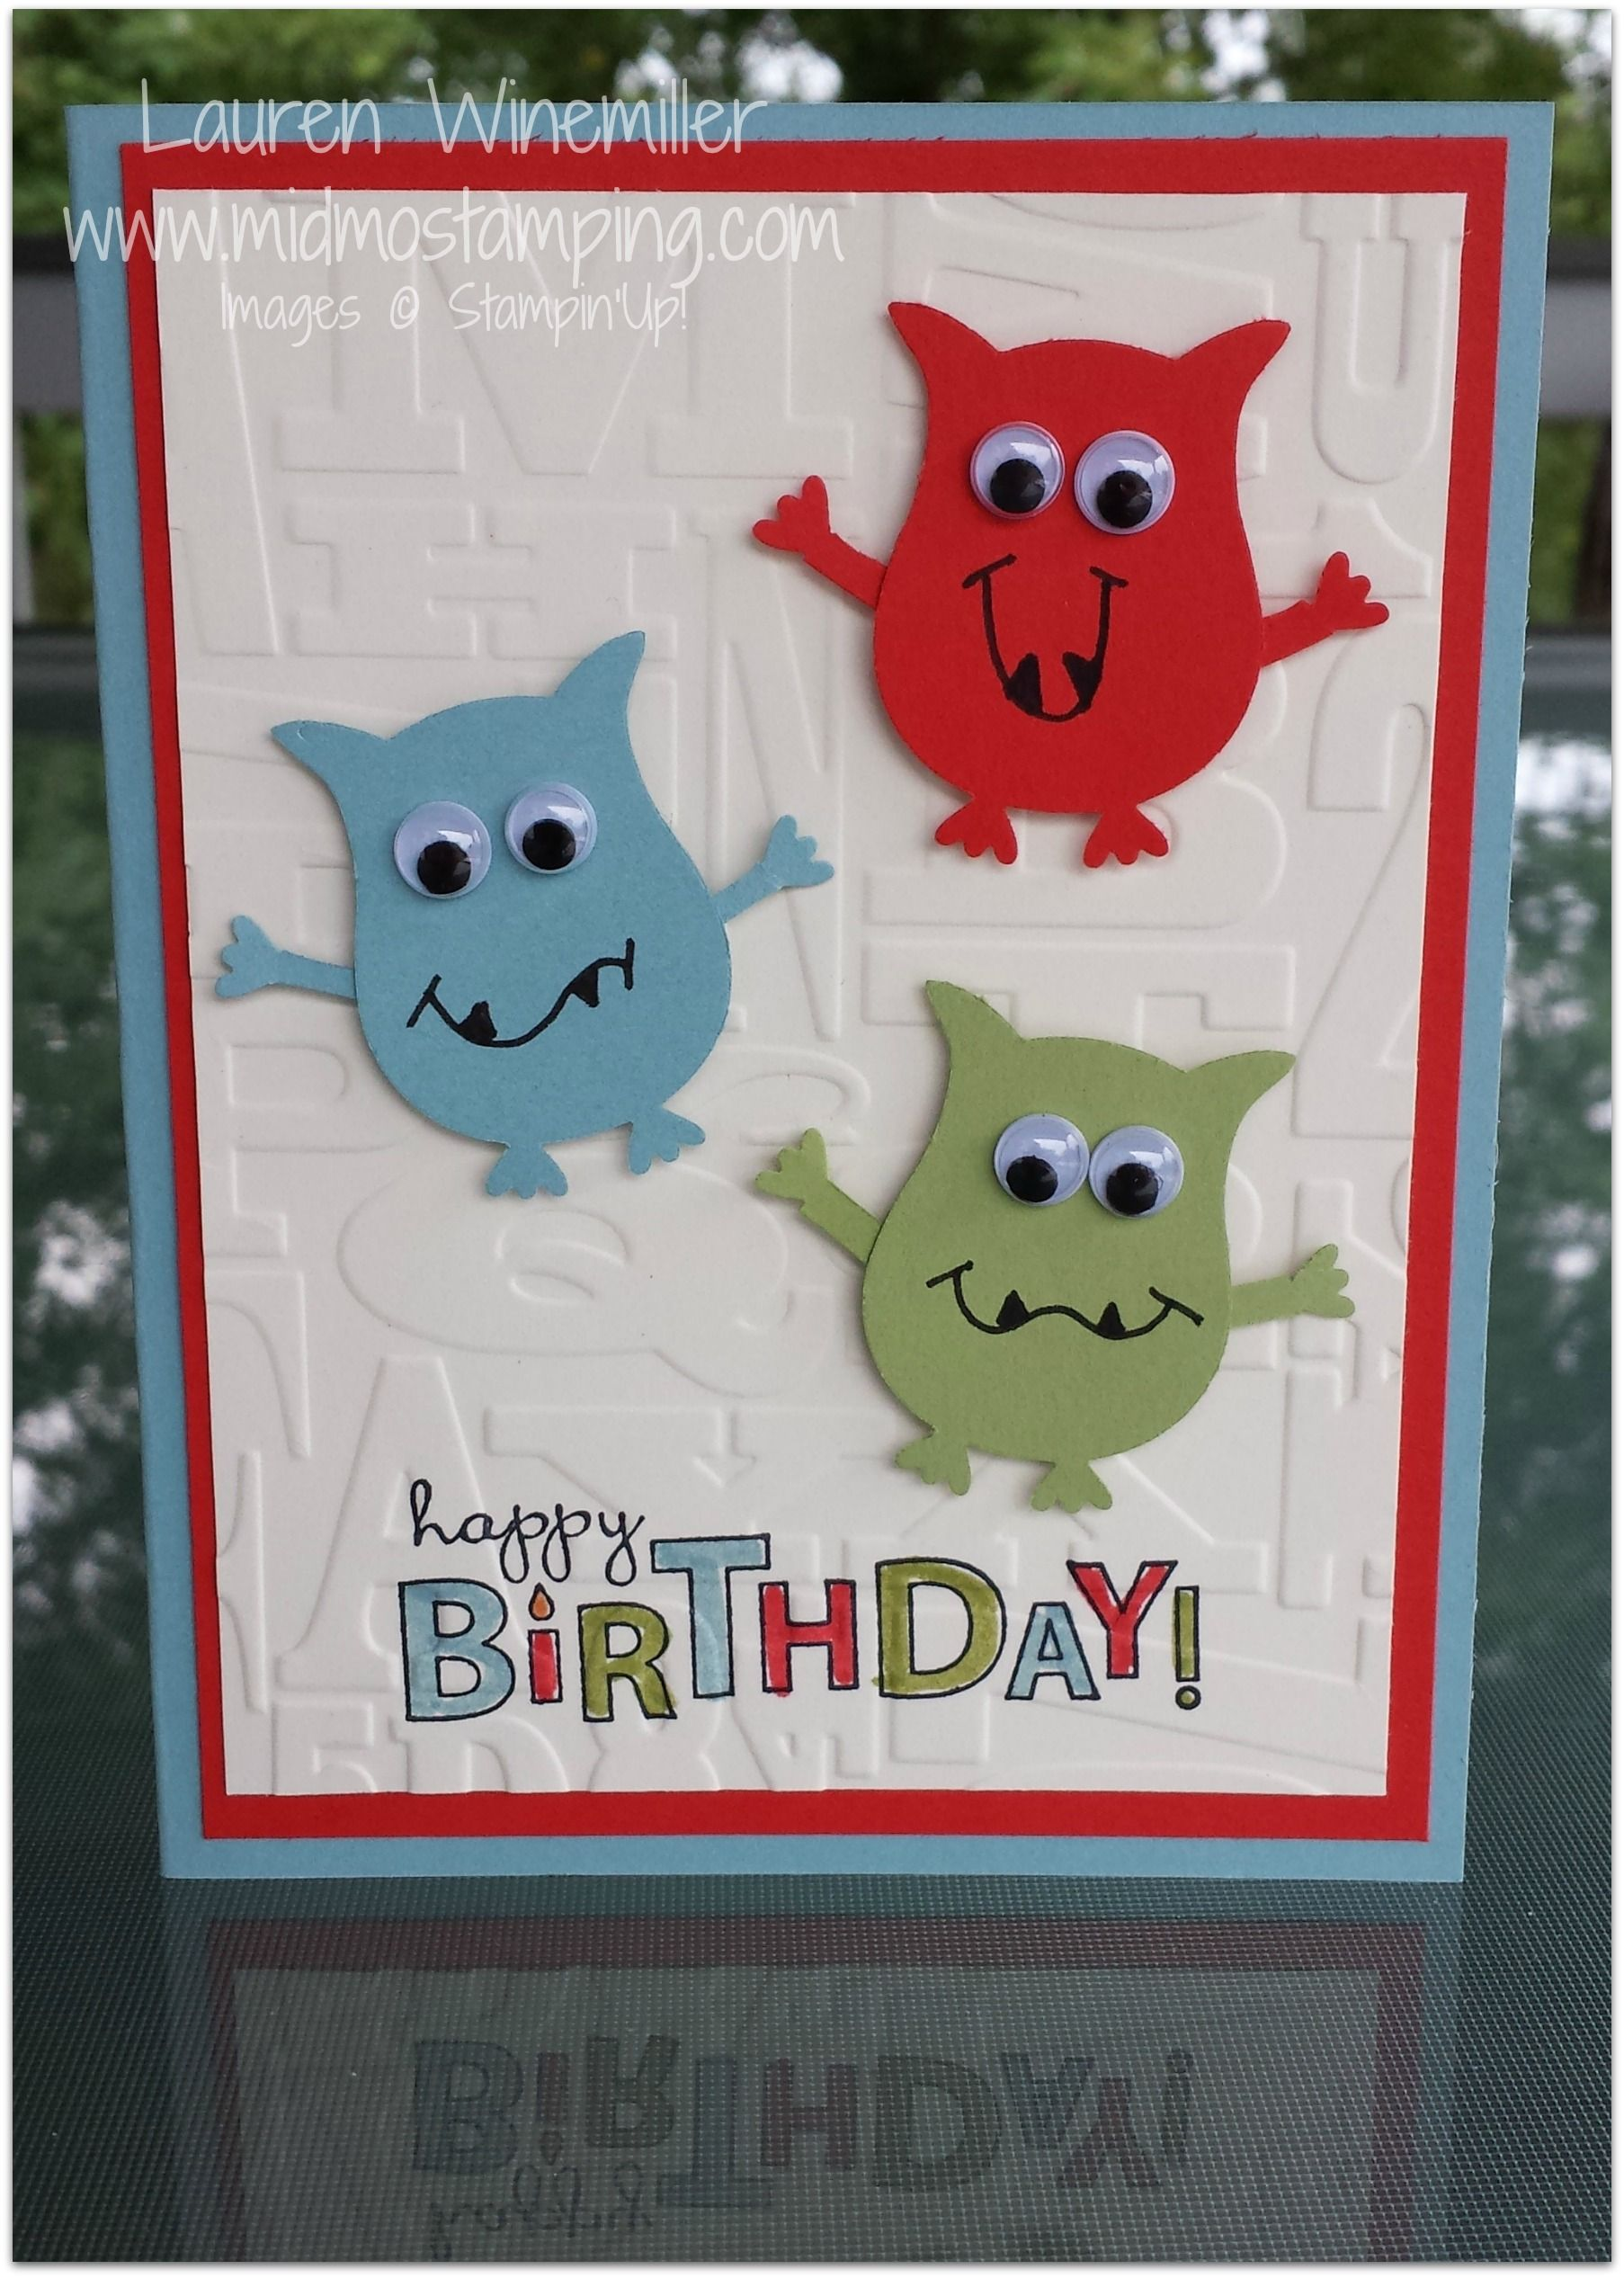 Stampin up owl builder punch bring on the cake kids monster stampin up owl builder punch bring on the cake stamp set kids monster birthday card bookmarktalkfo Images